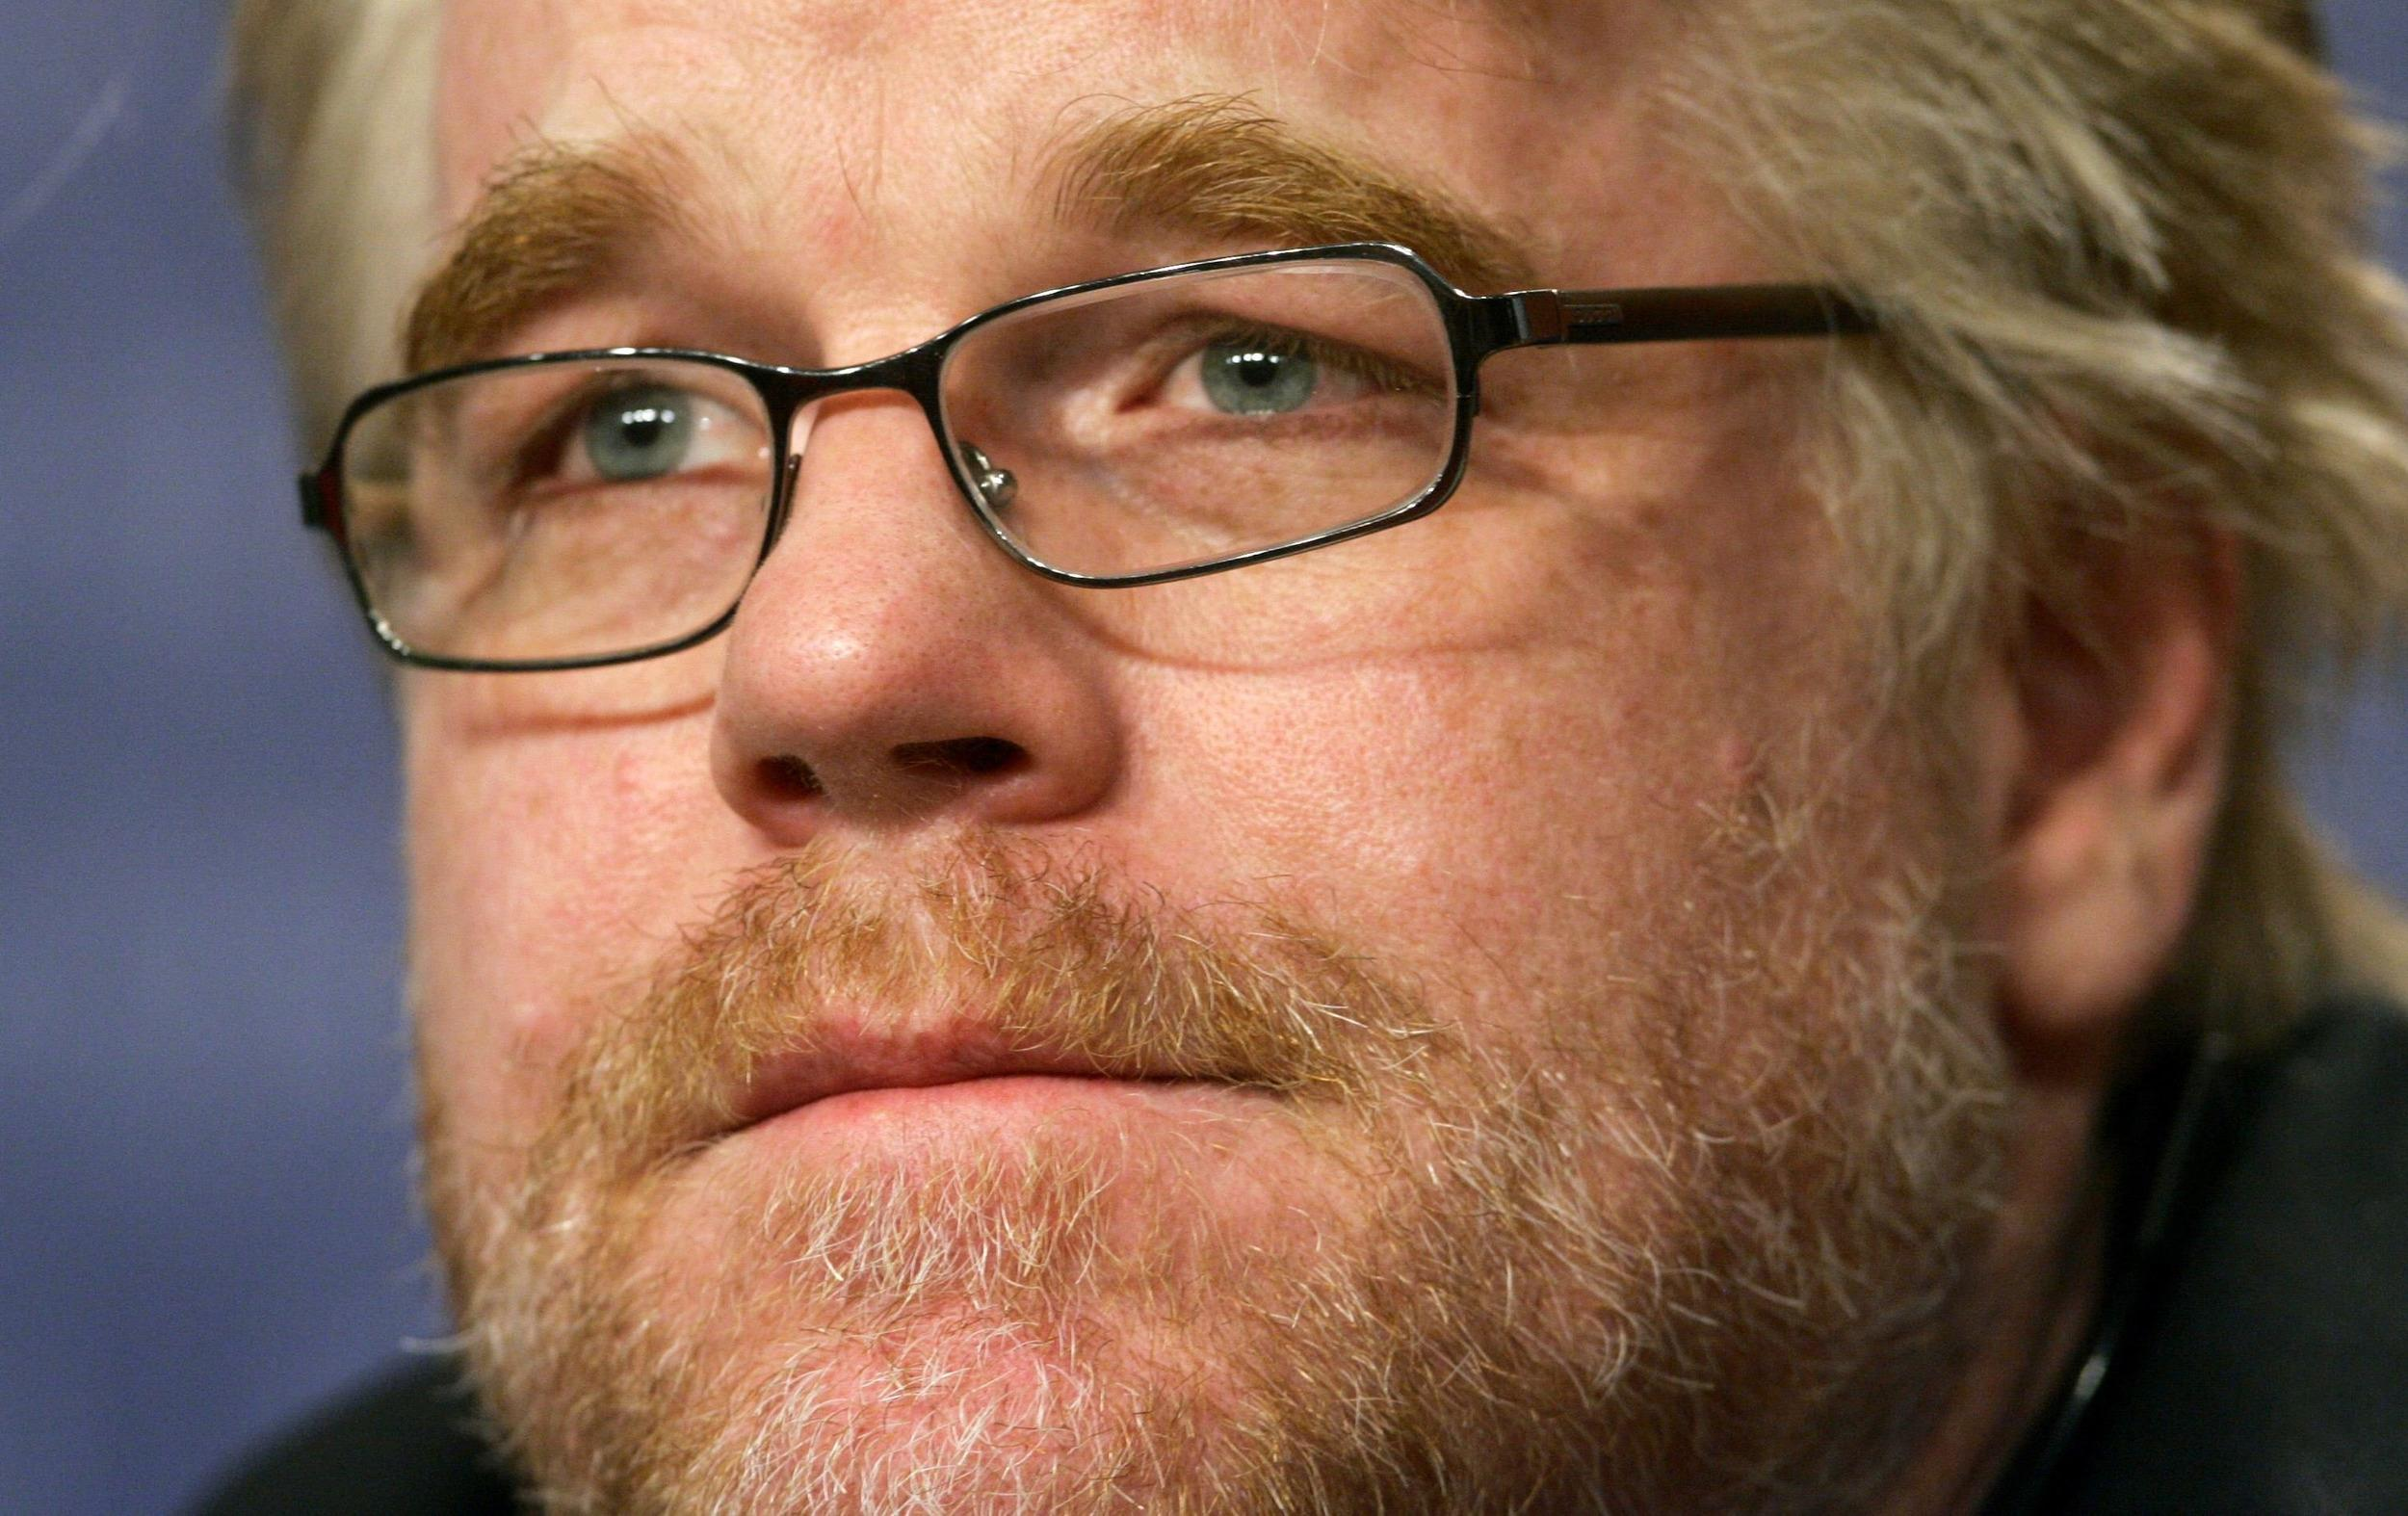 Image: File photo of Hoffman attending a news conference at the 56th Berlinale International Film Festival in Berlin